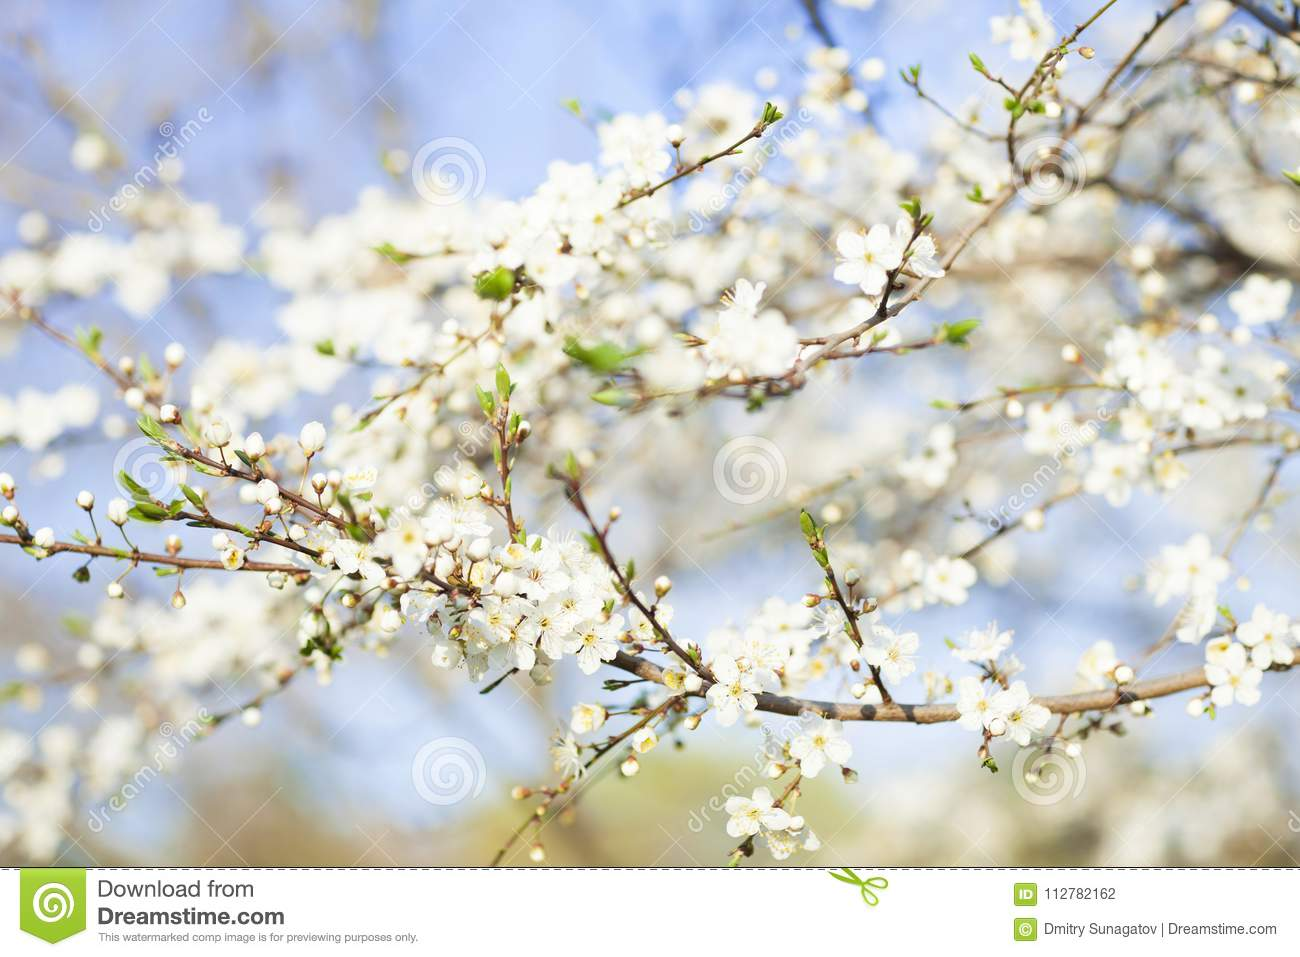 Spring beauty background blooming white flowers of trees stock spring beauty background blooming white flowers of trees mightylinksfo